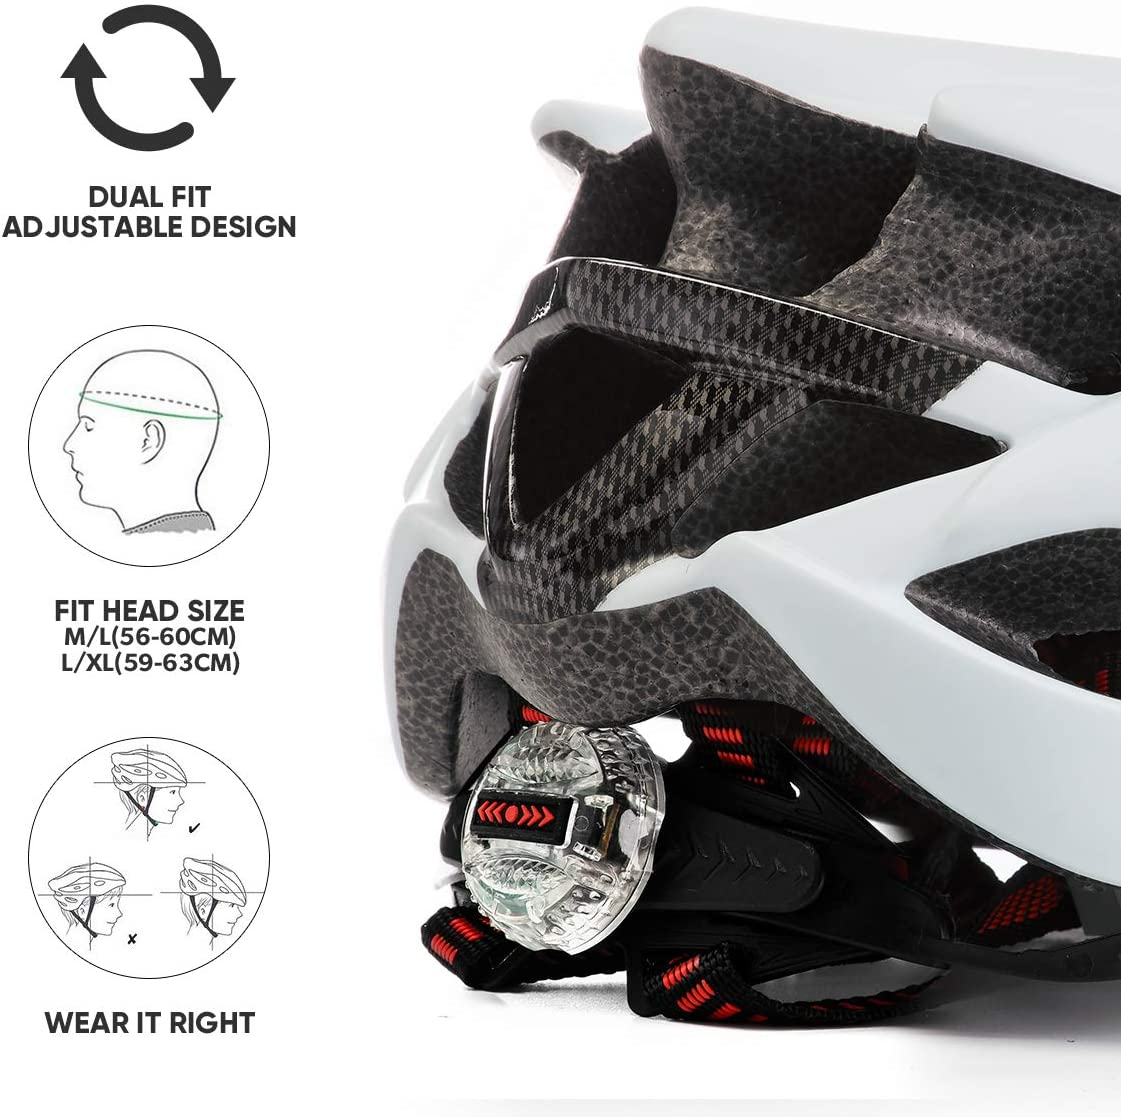 Features of the bike helmet: dual fit adjustable design, fits up to 63cm.